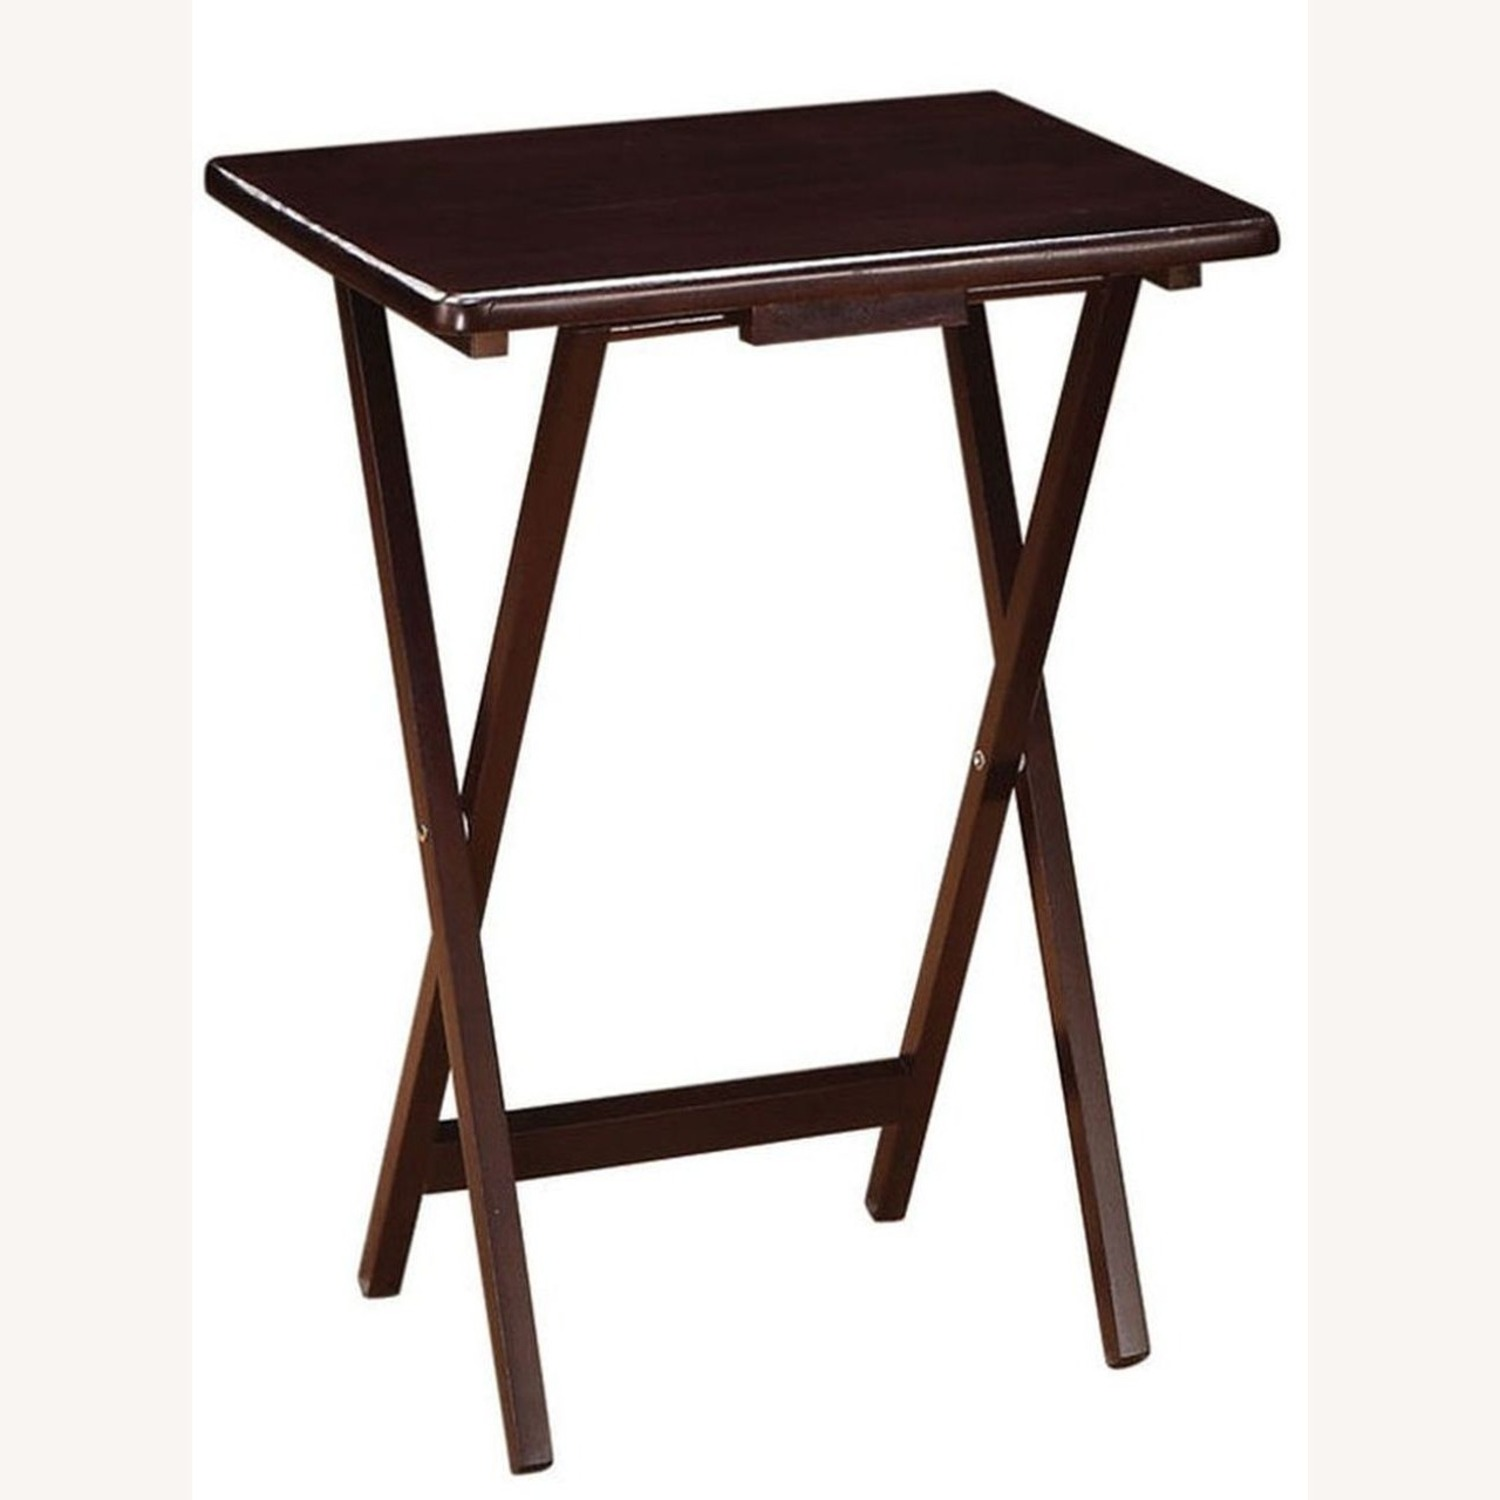 5-Piece Tray Table In Cappuccino Finish - image-2